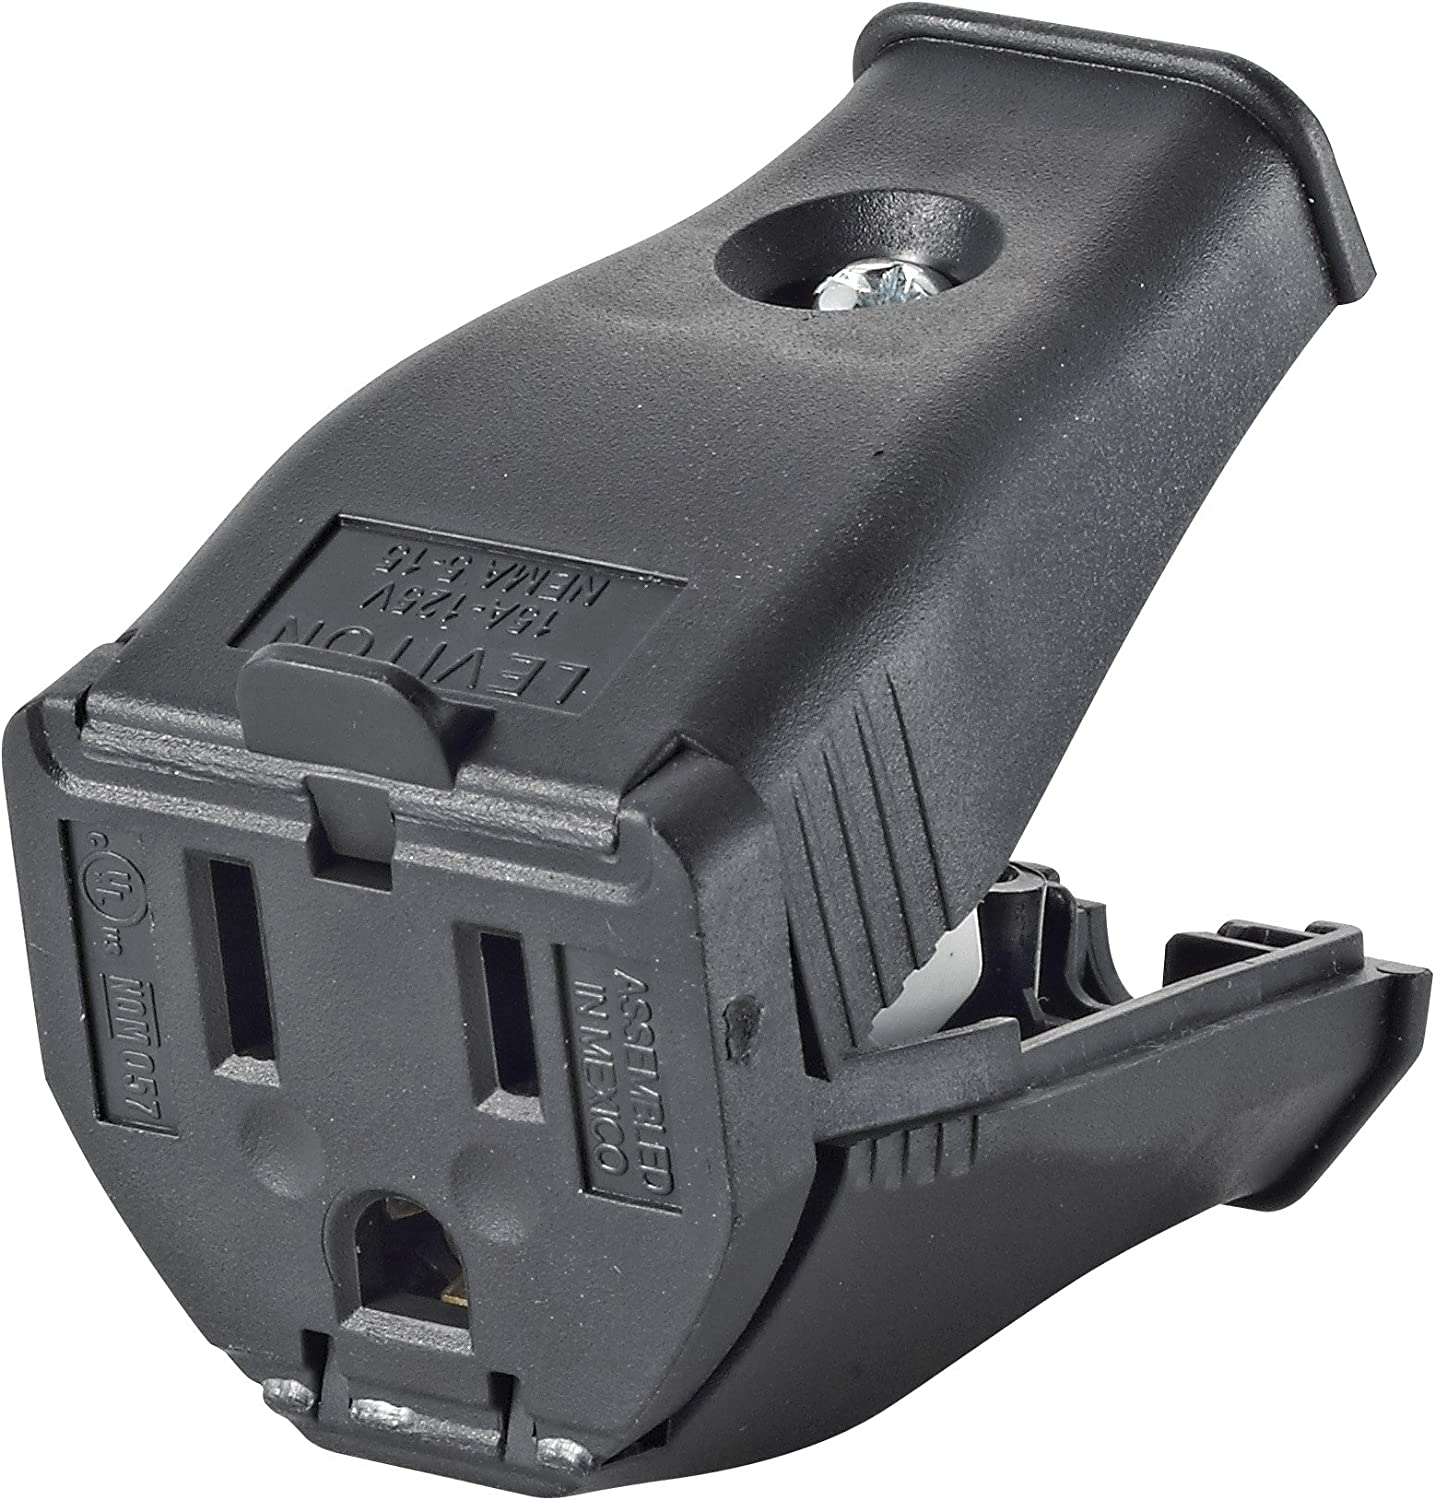 Leviton 3W102-E Not Available Clamptite Hinged Straight Blade Cord Connector, 125 V, 15 A, 2 Pole, 3 Wire, Thermoplastic